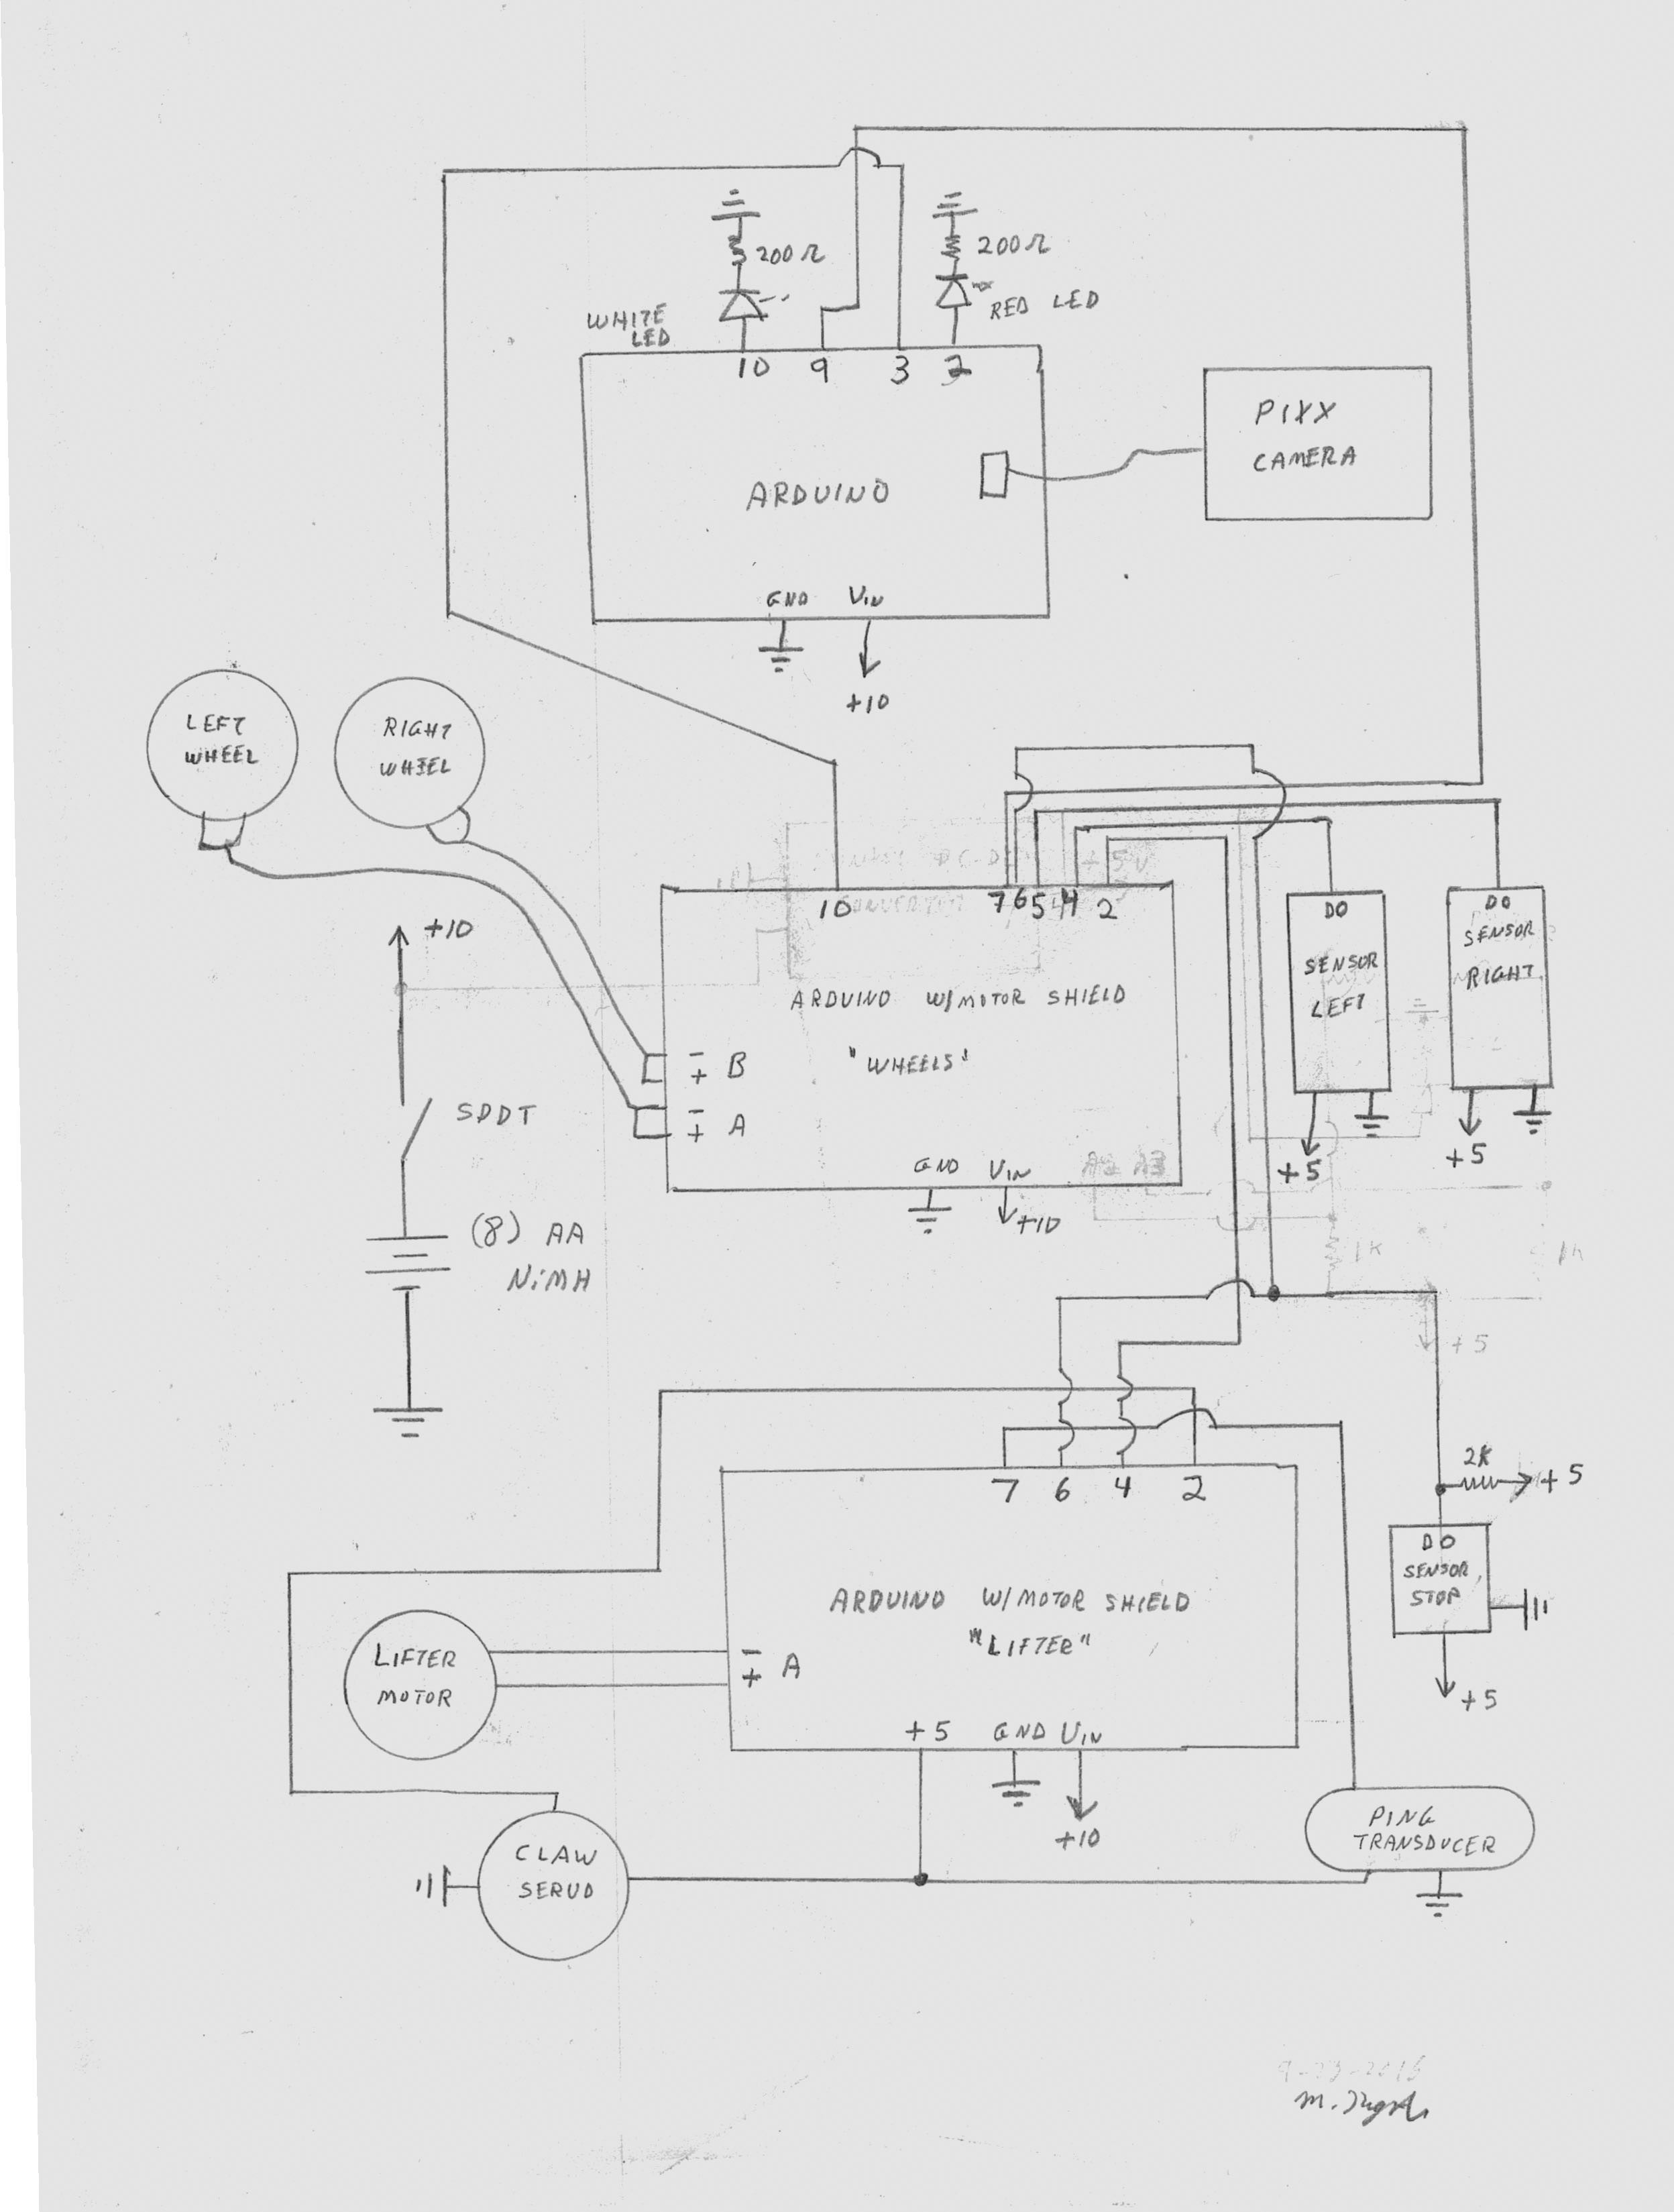 Pretty Useless Machine Catapult Engineering Schematics The Home Location And Sketch Changes Documented On This Site Modify Controls To Make Robot Perform Its Task Latest Schematic Is Below